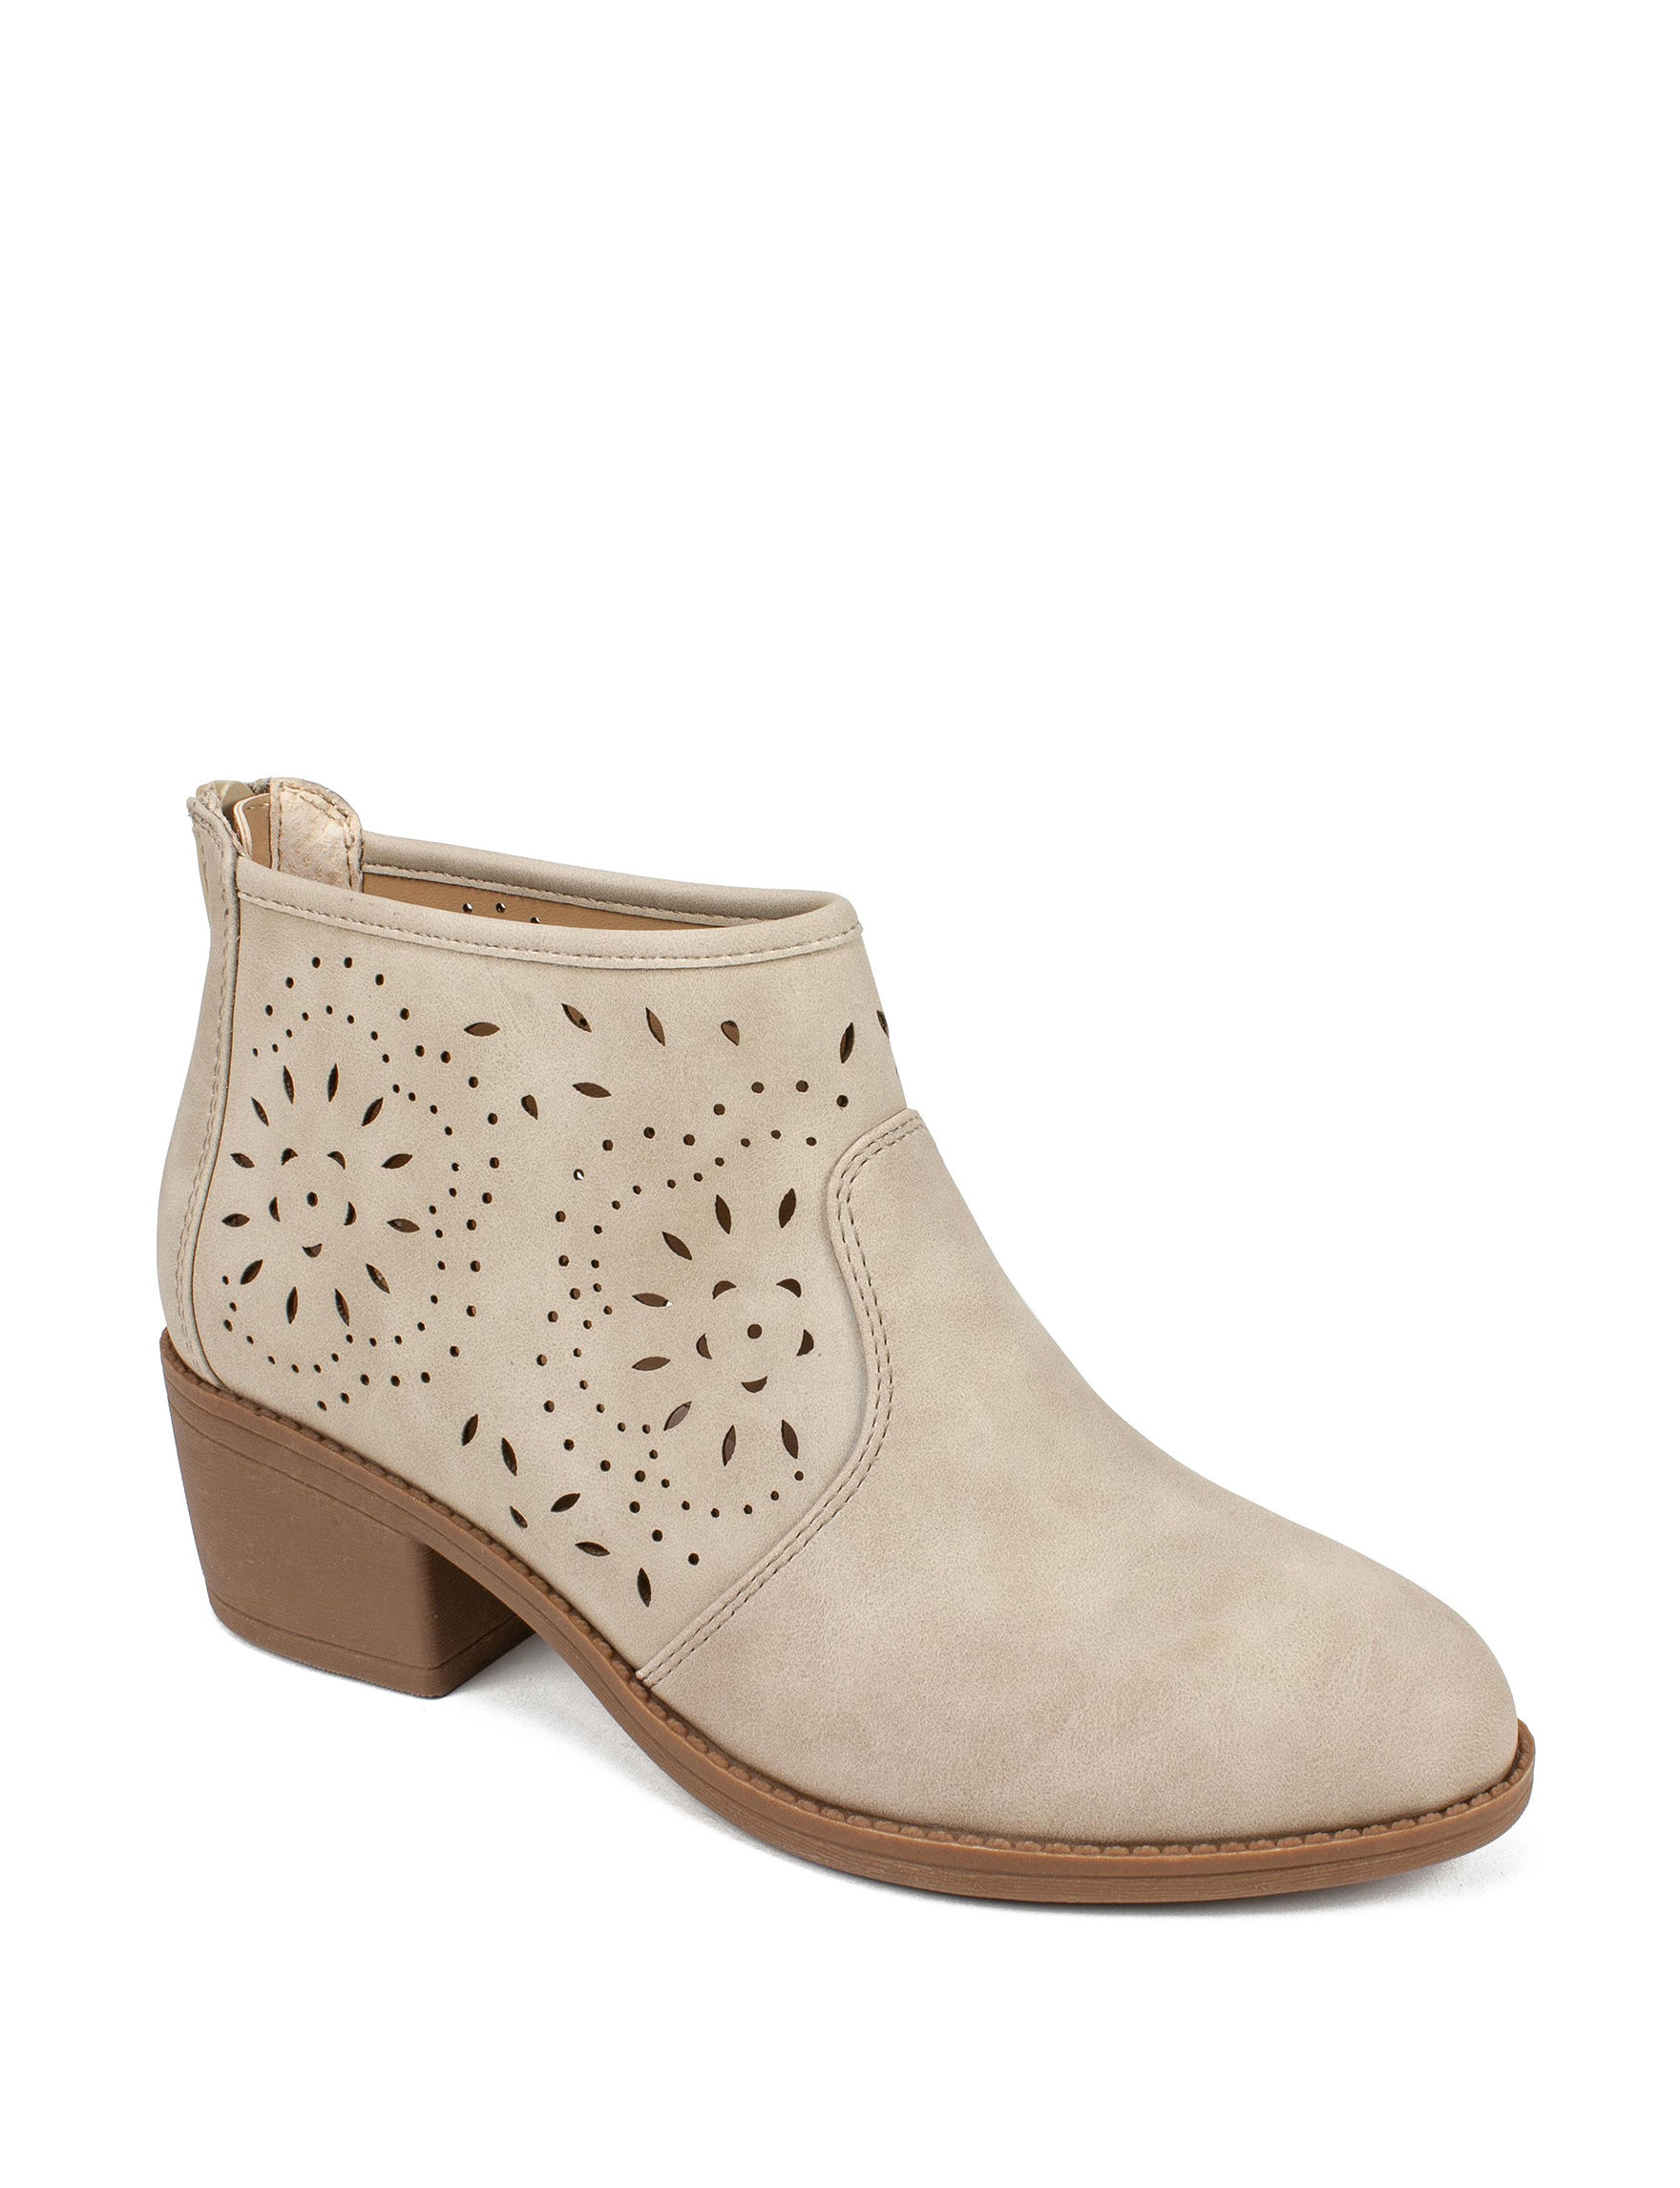 Seven Dials Tan Ankle Boots & Booties